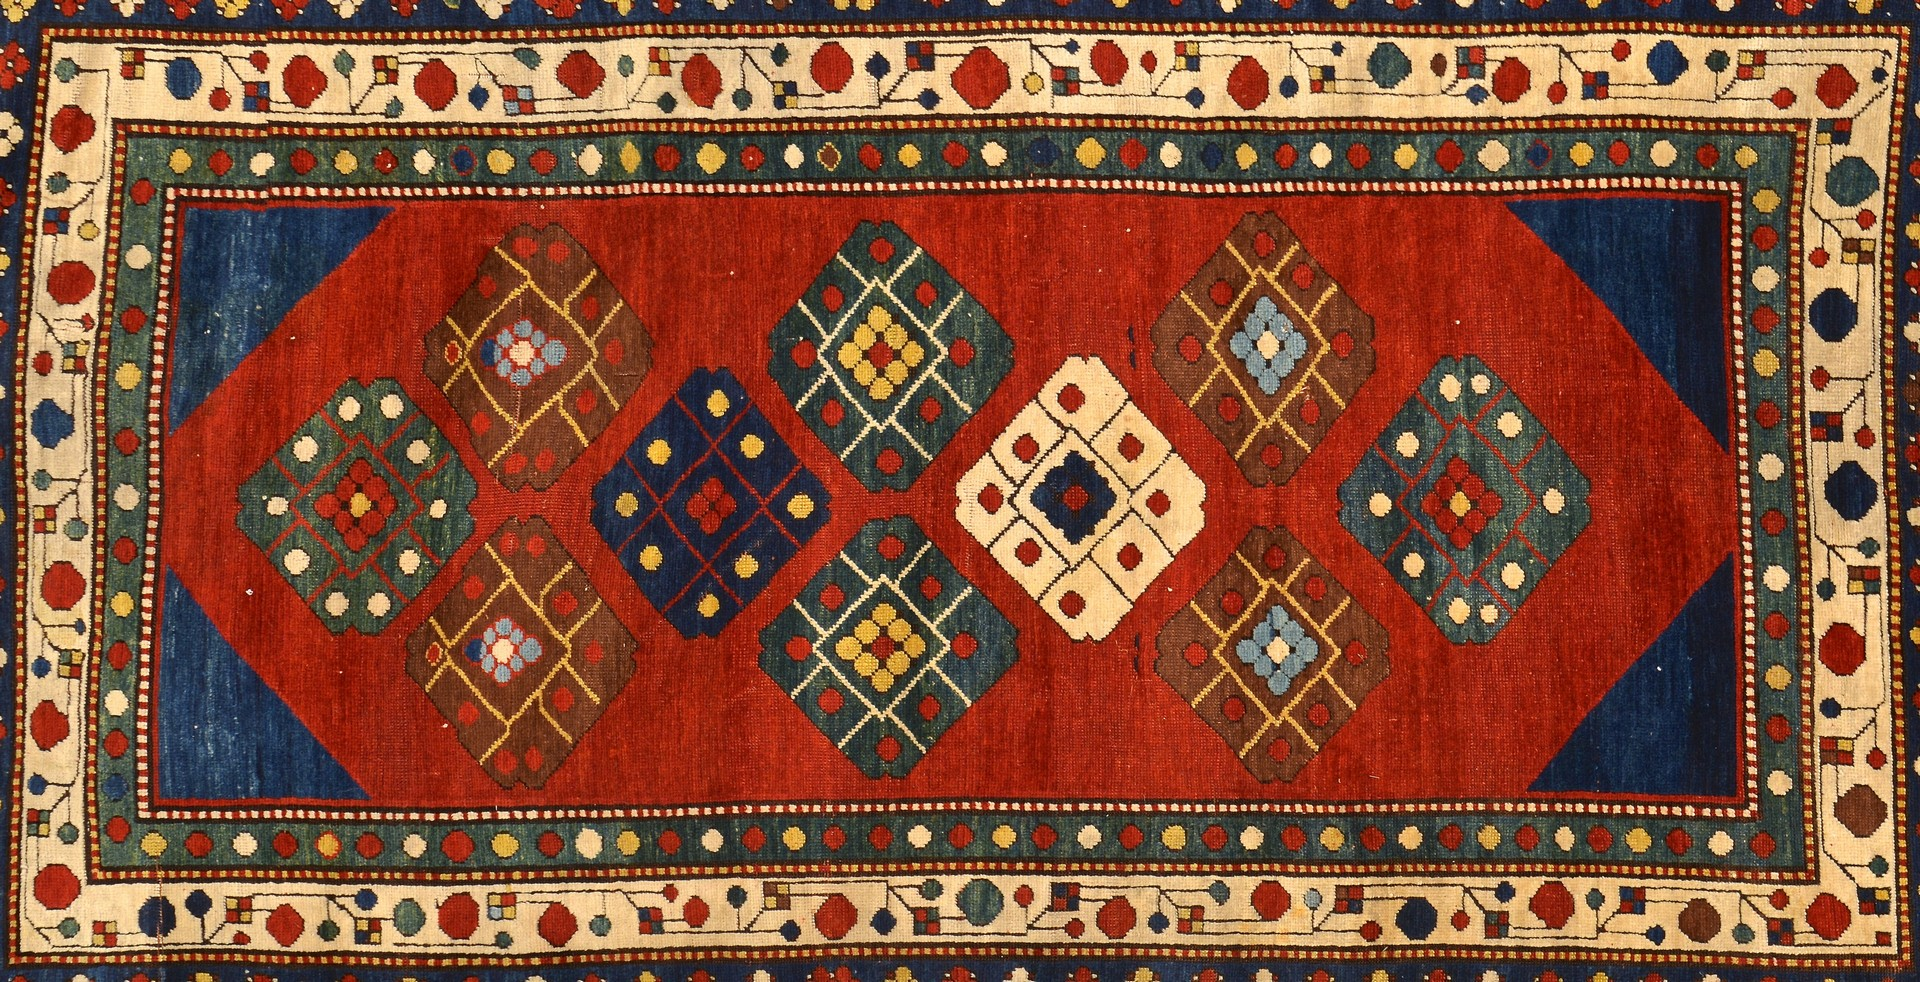 Lot 241: Antique Lori Pambak Kazak Area Rug